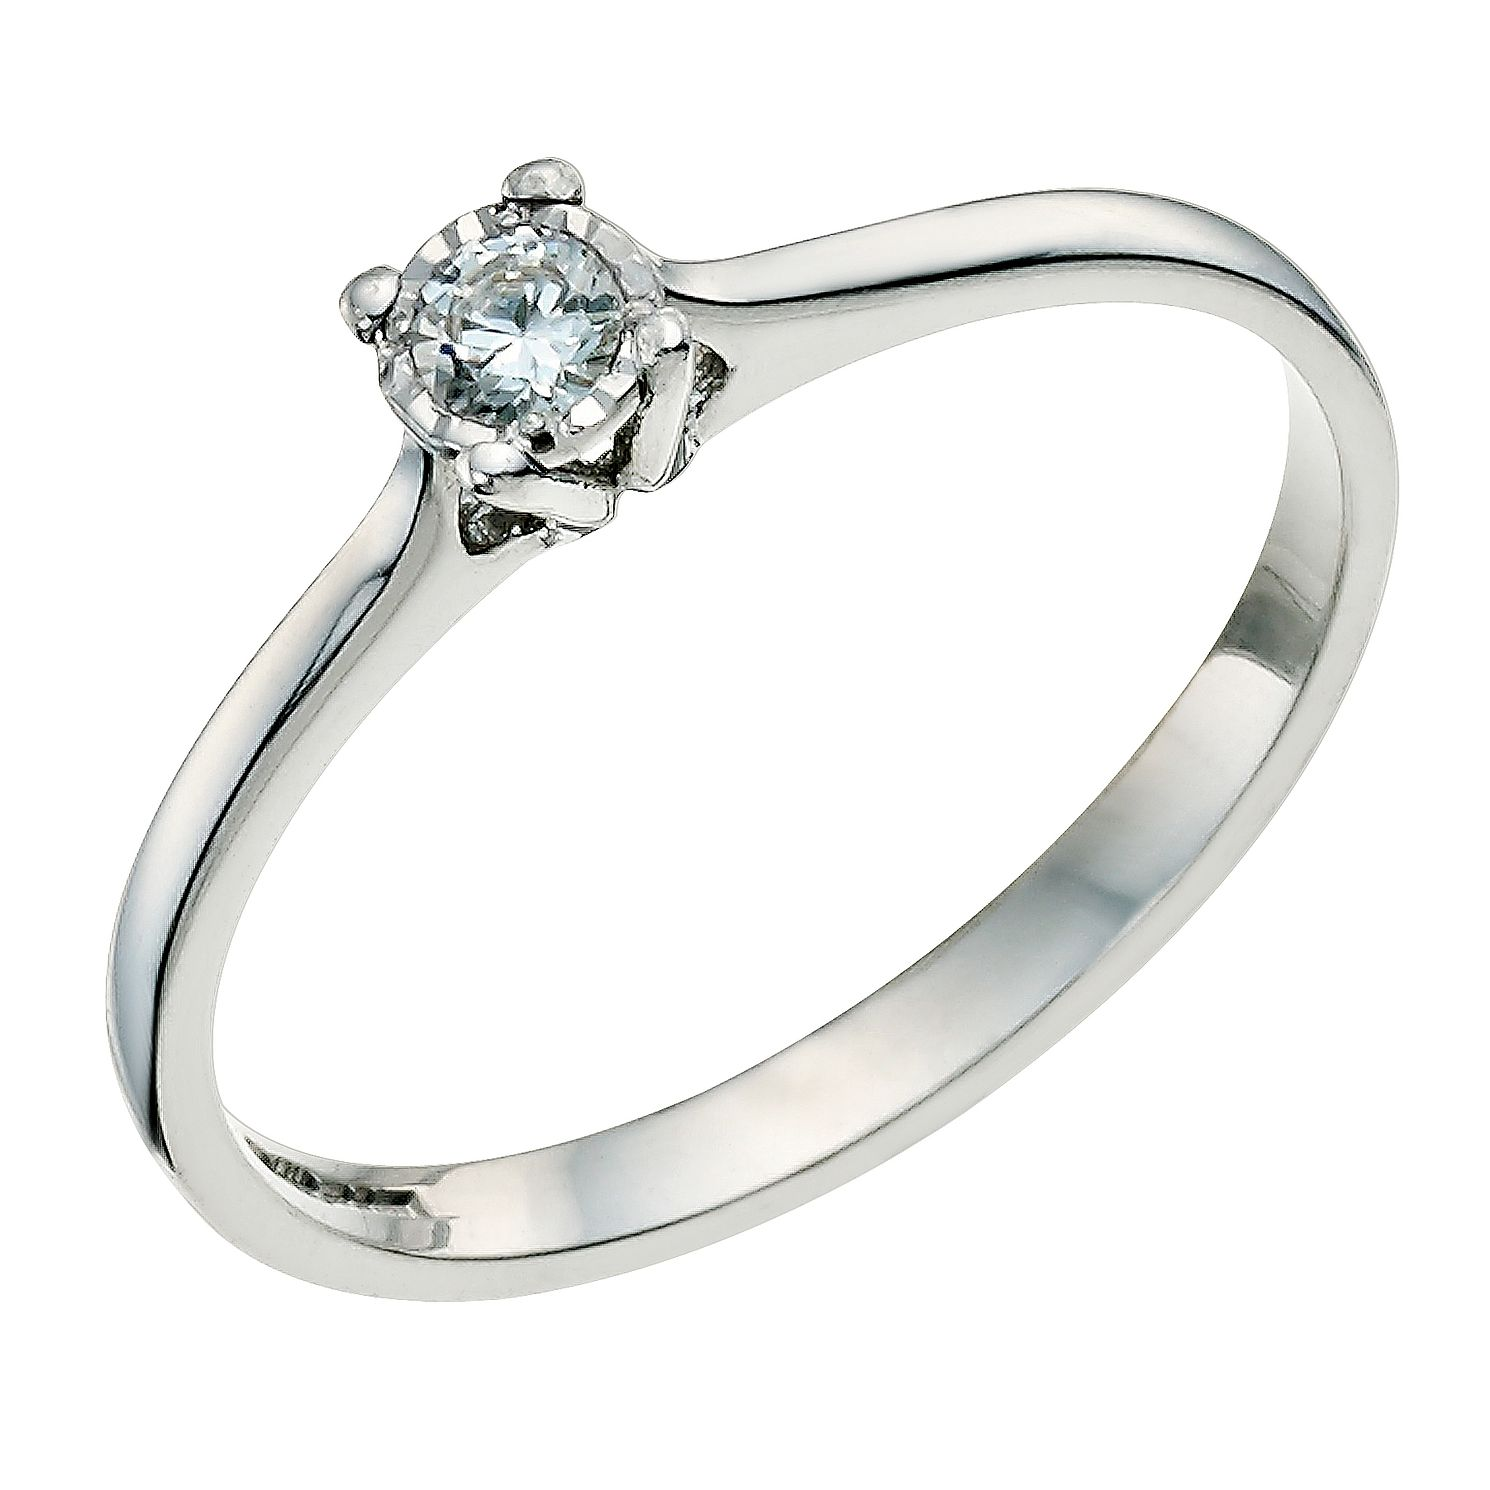 nicole rose solitaire ring princess cut jewellery